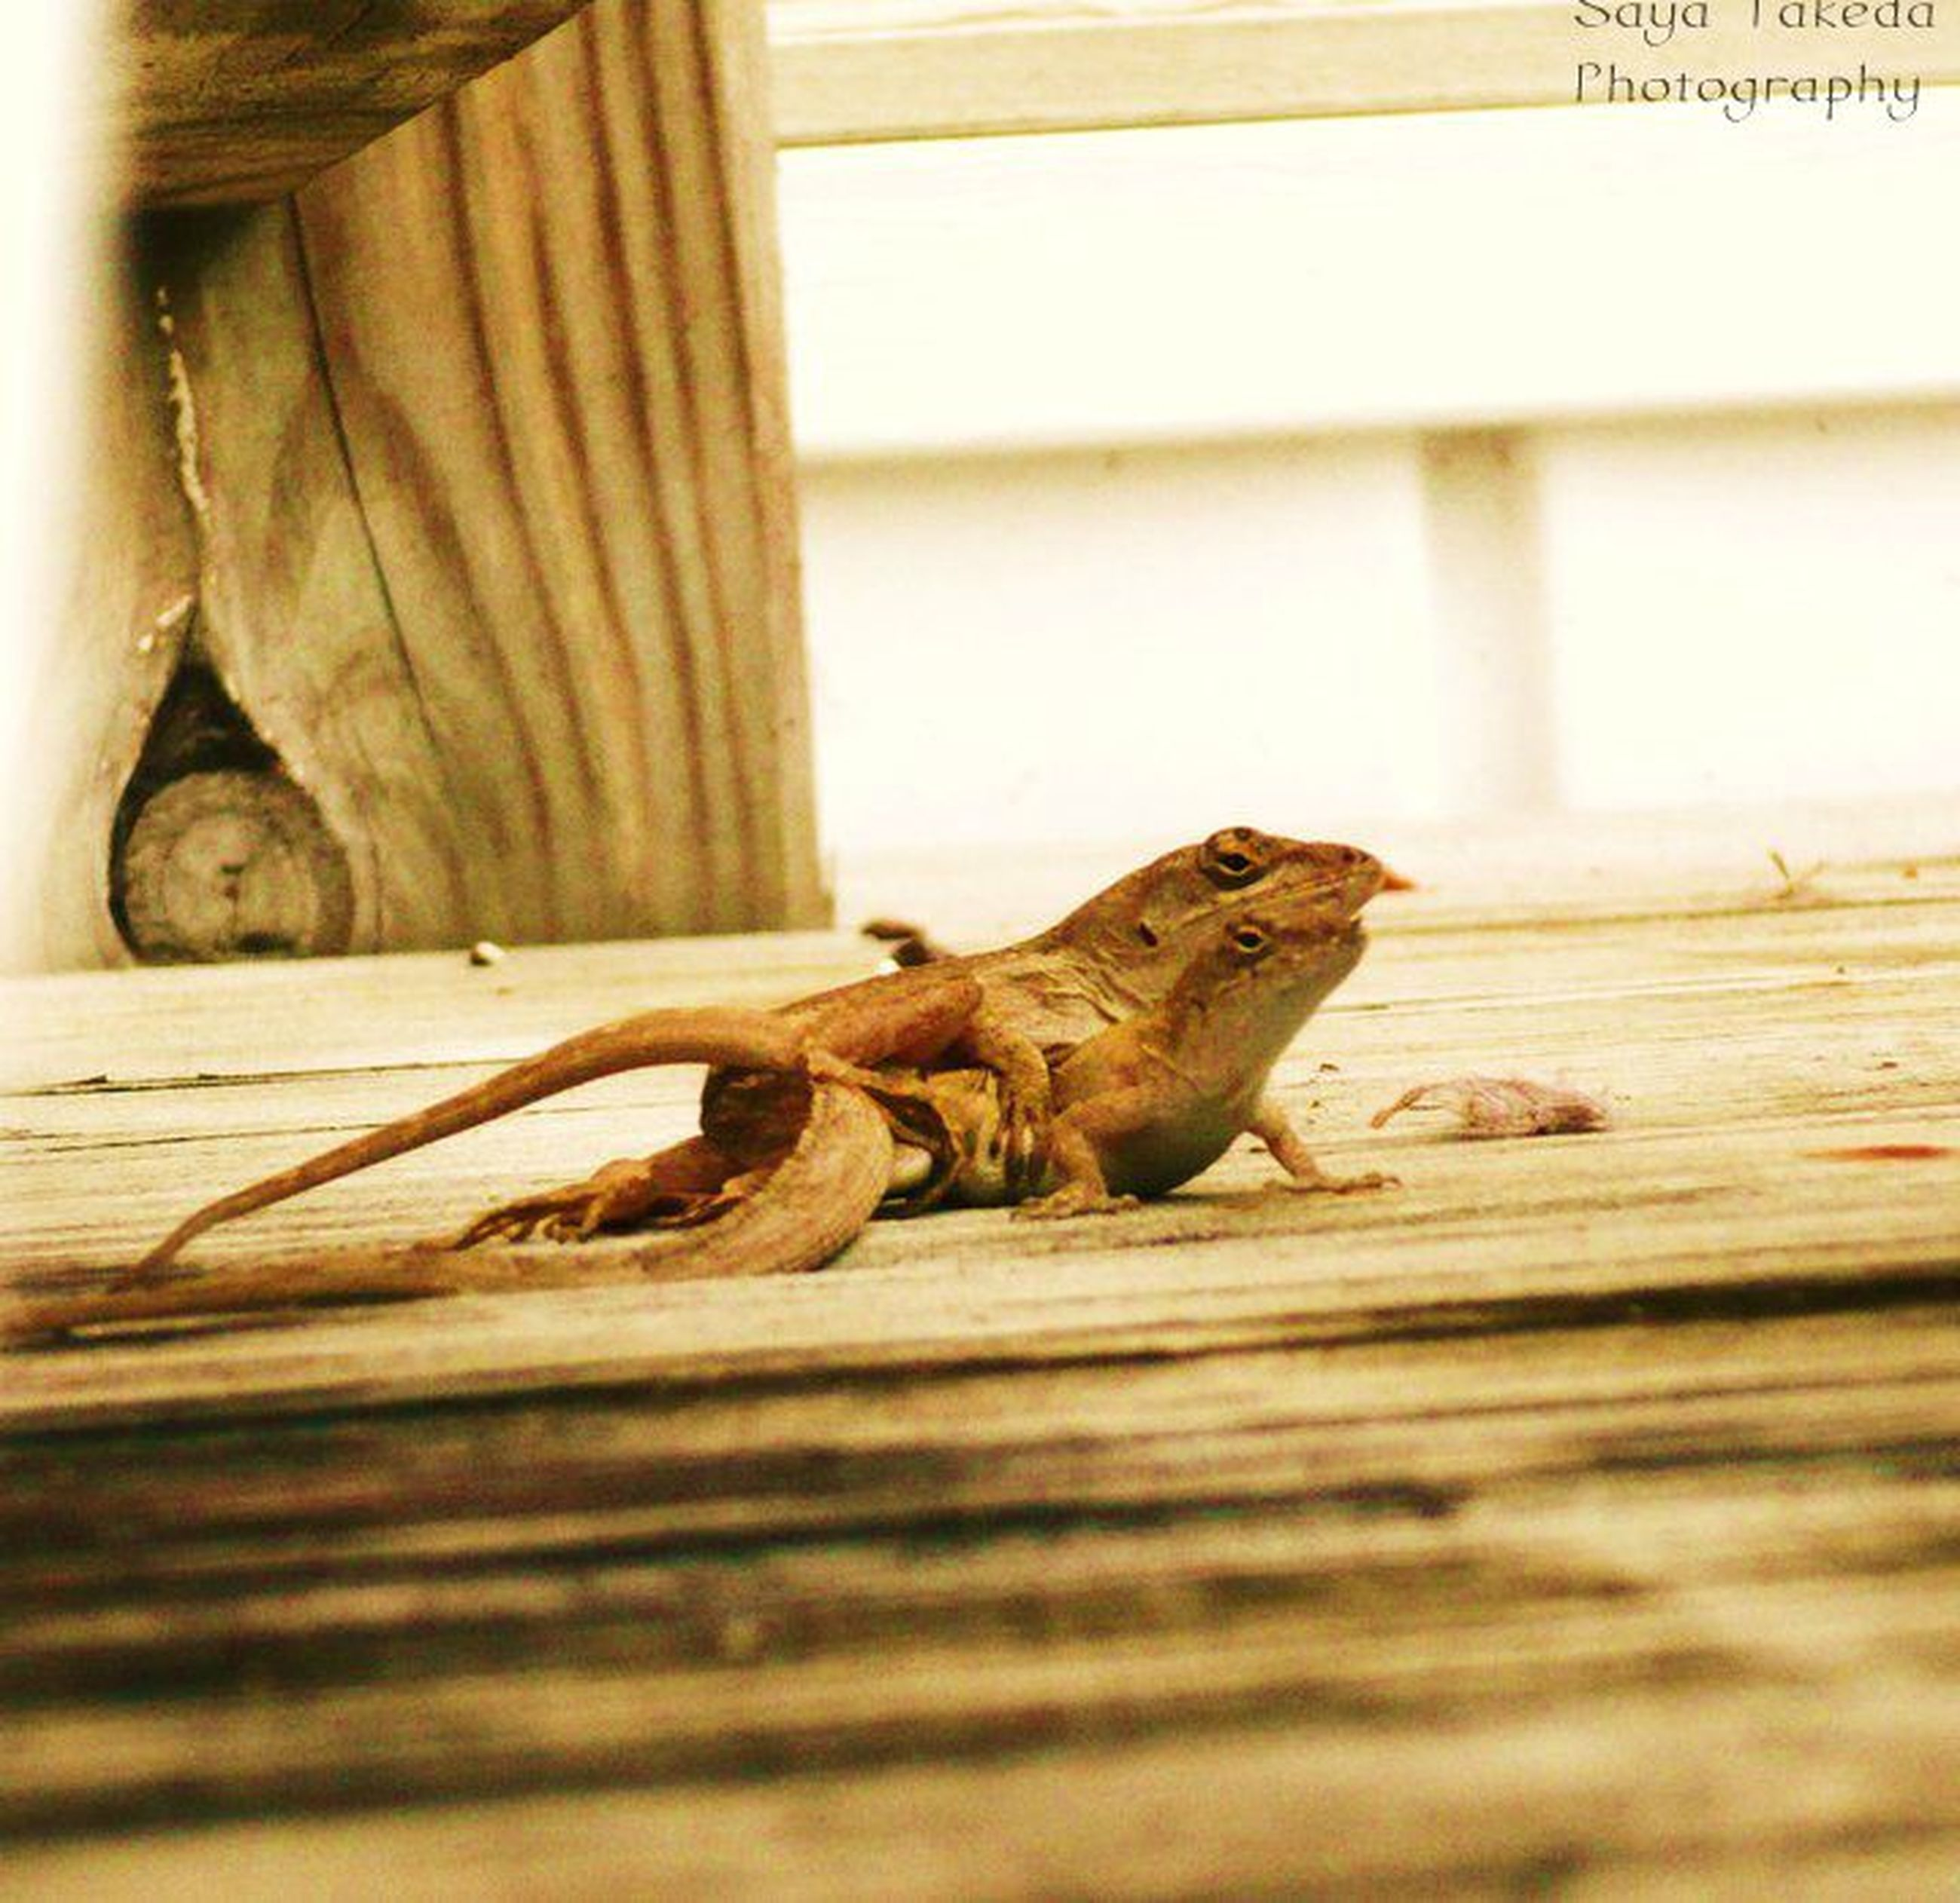 animal themes, one animal, wood - material, mammal, selective focus, wood, domestic animals, wooden, wildlife, plank, brown, indoors, animals in the wild, day, zoology, relaxation, side view, close-up, no people, sleeping